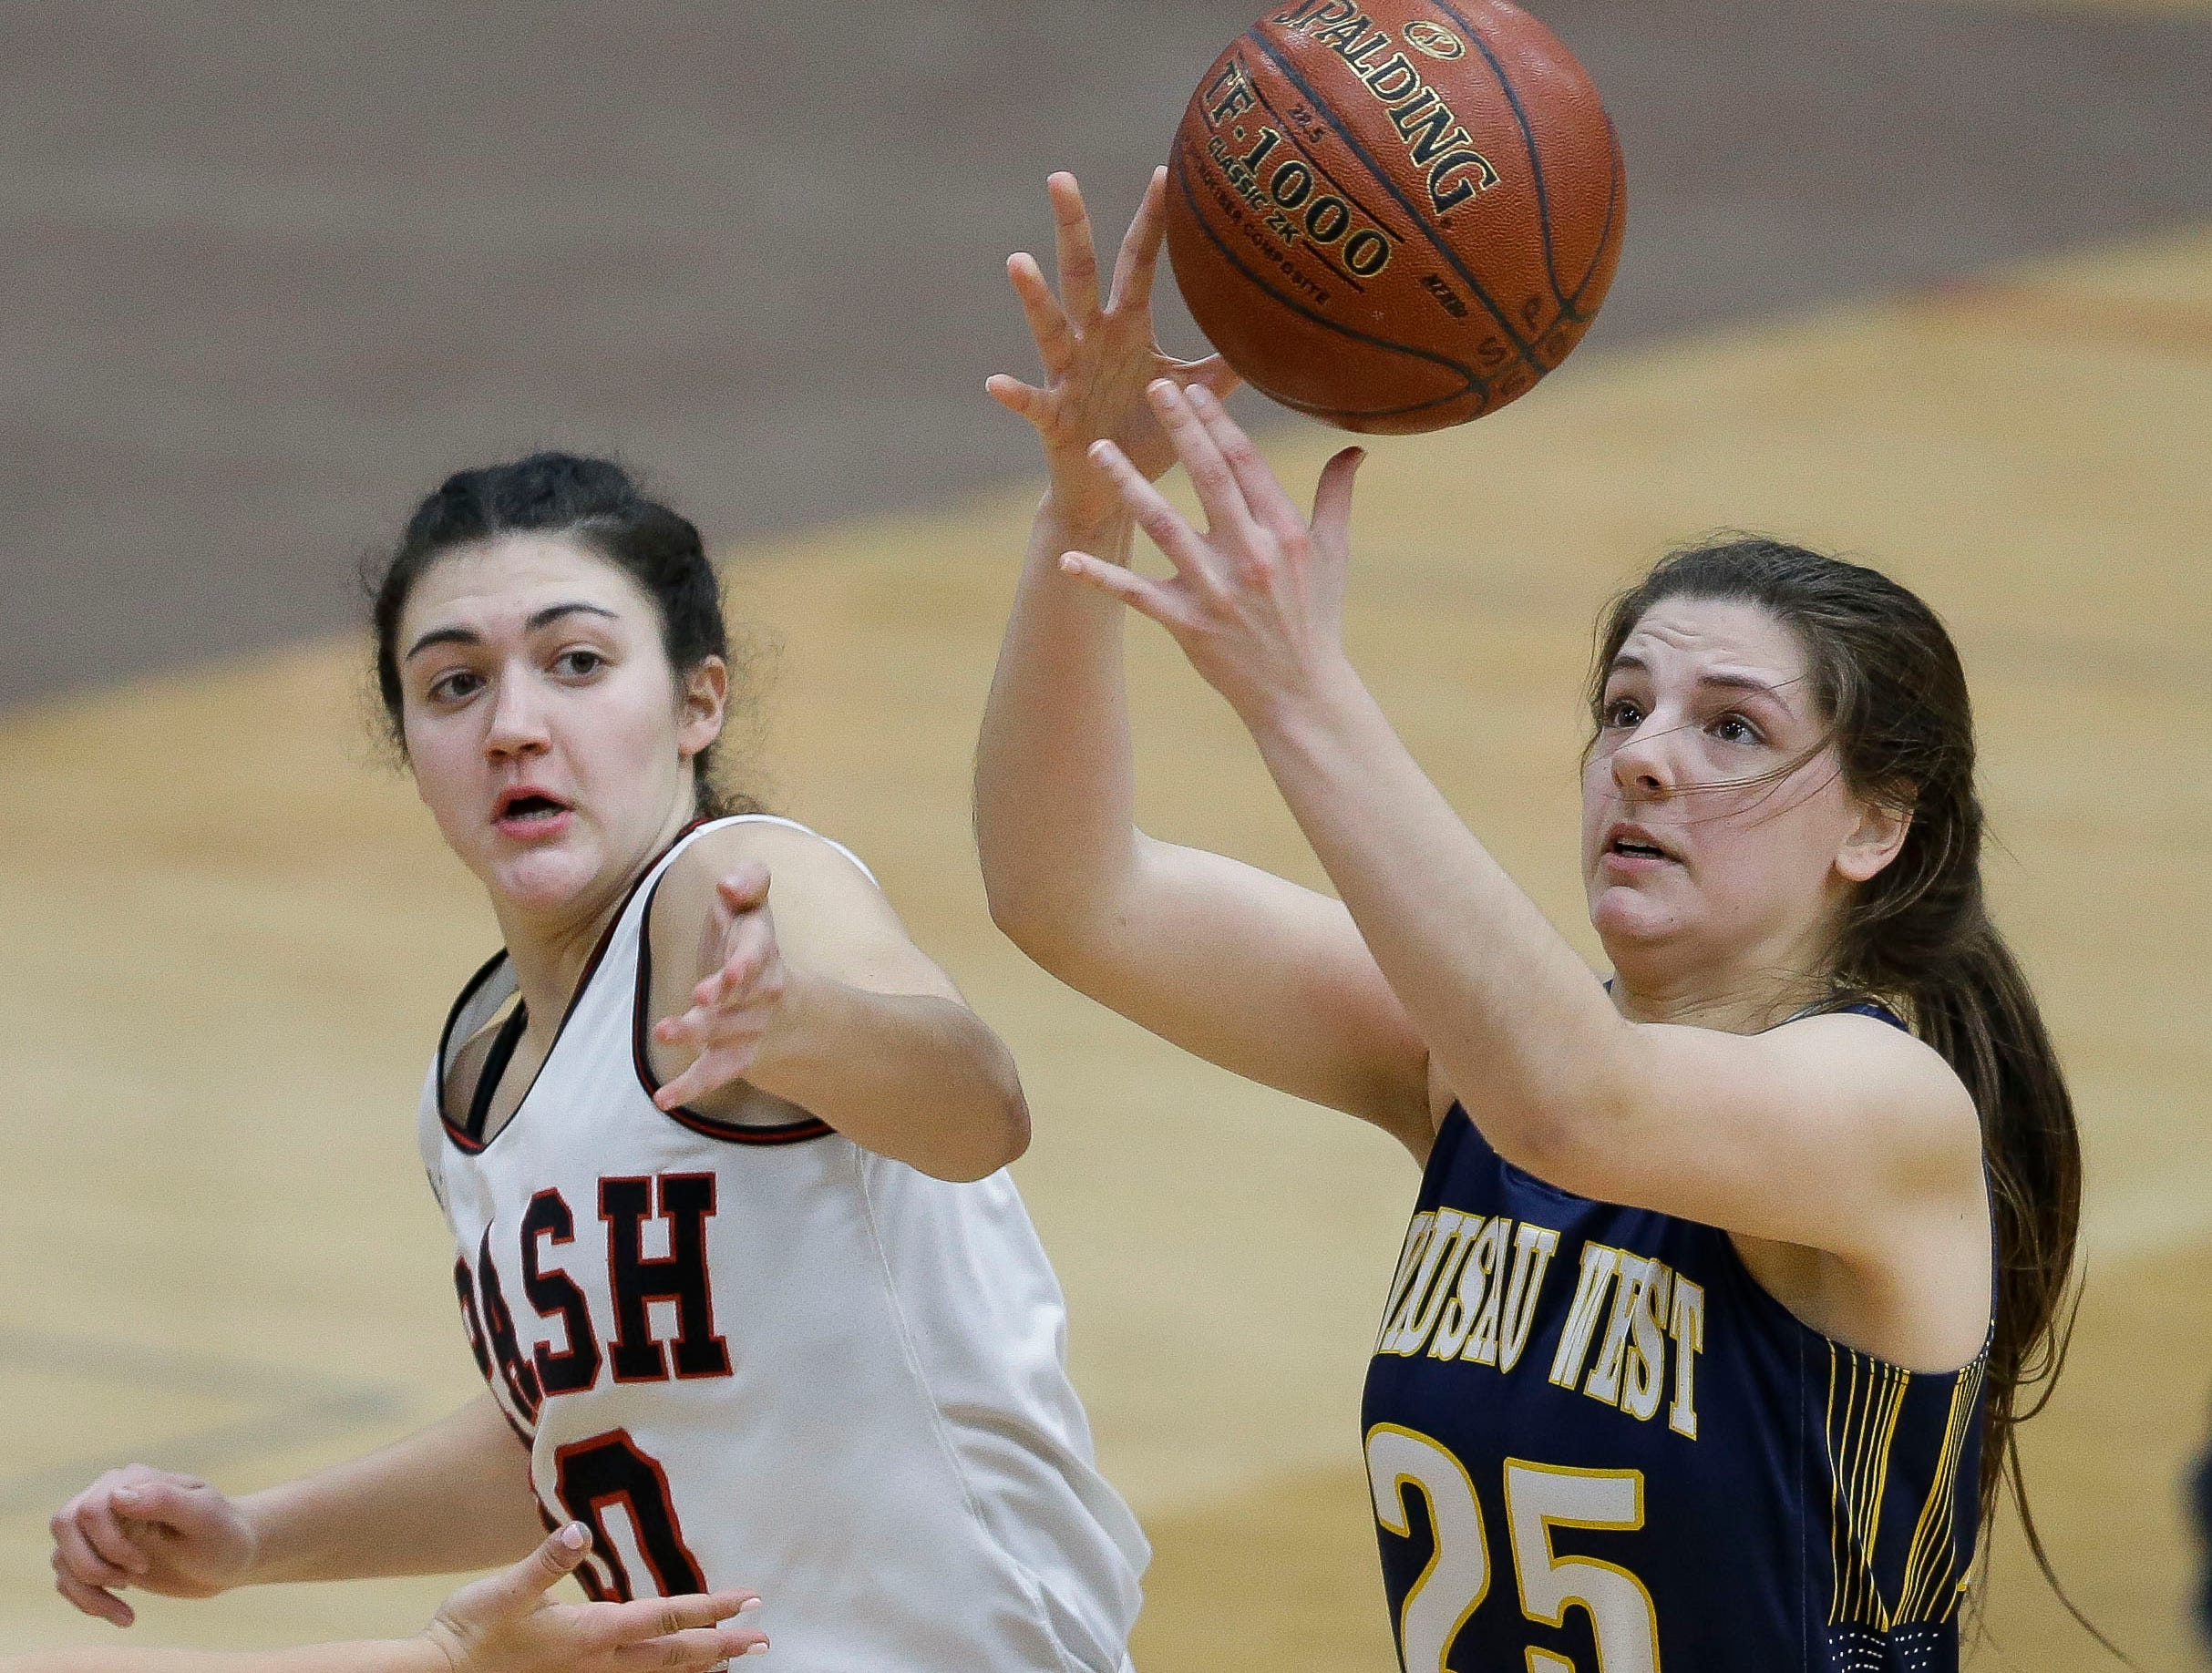 SPASH's Leah Earnest (40) and Wausau West's Tess Hauer (25) fight for a rebound on Thursday, February 14, 2019, at SPASH in Stevens Point, Wis.Tork Mason/USA TODAY NETWORK-Wisconsin